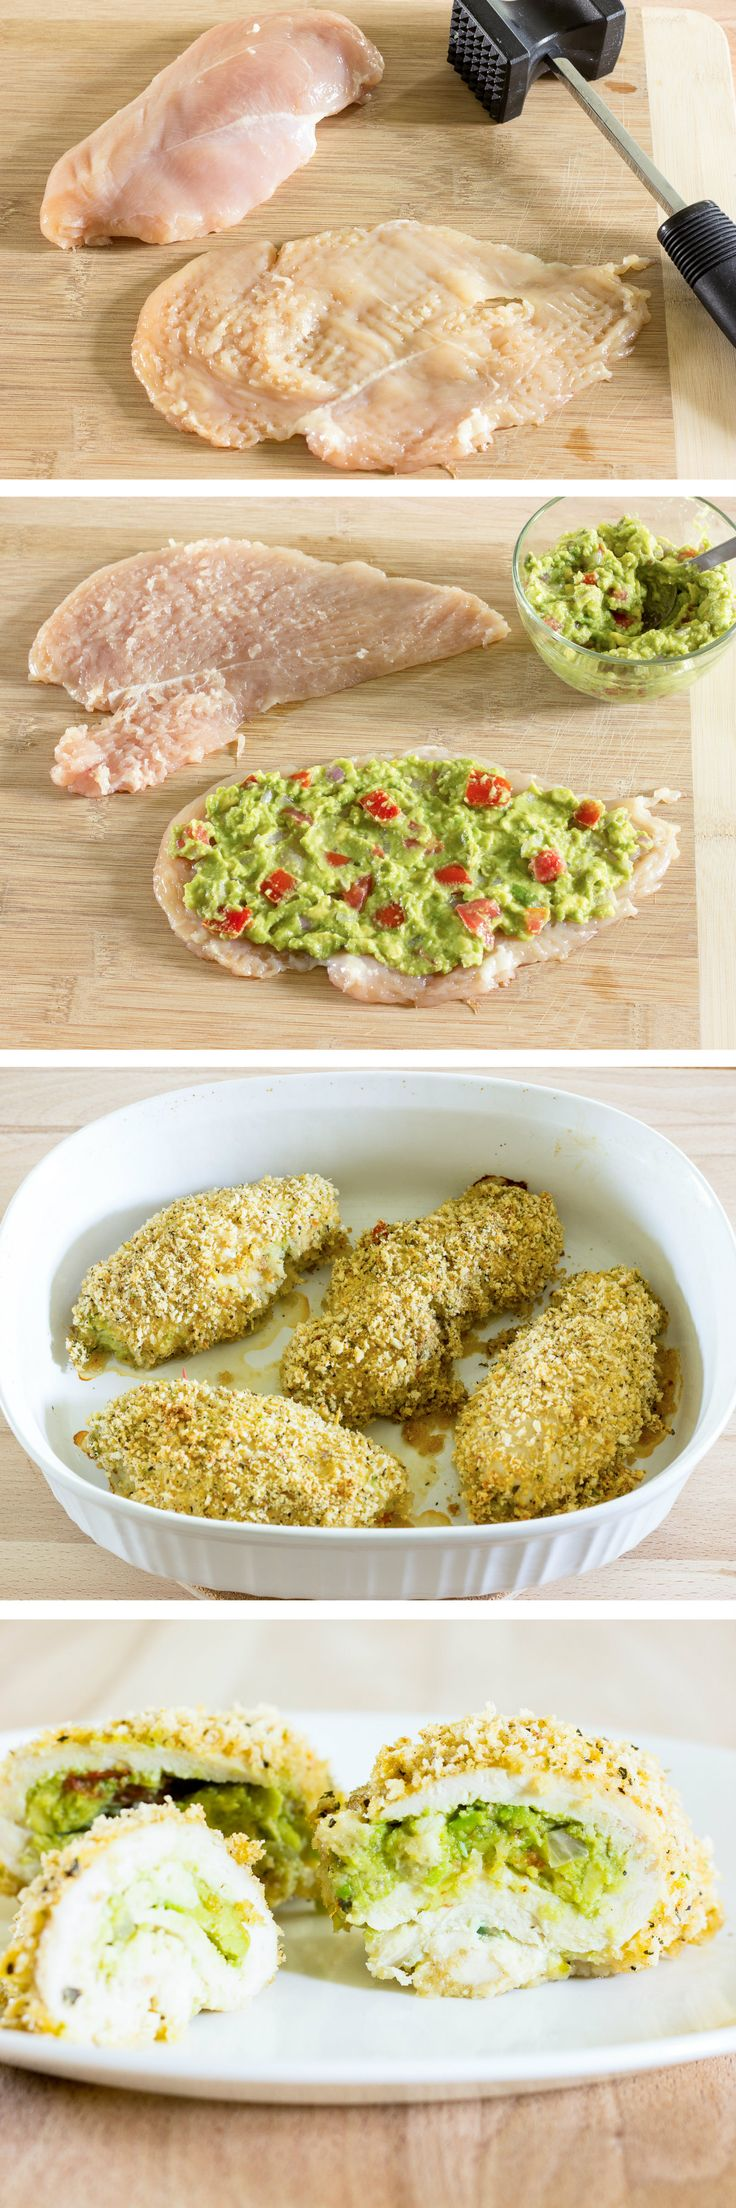 Guacamole Stuffed Chicken Breast - sub panko with almond flour and Parmesan and it's now keto!